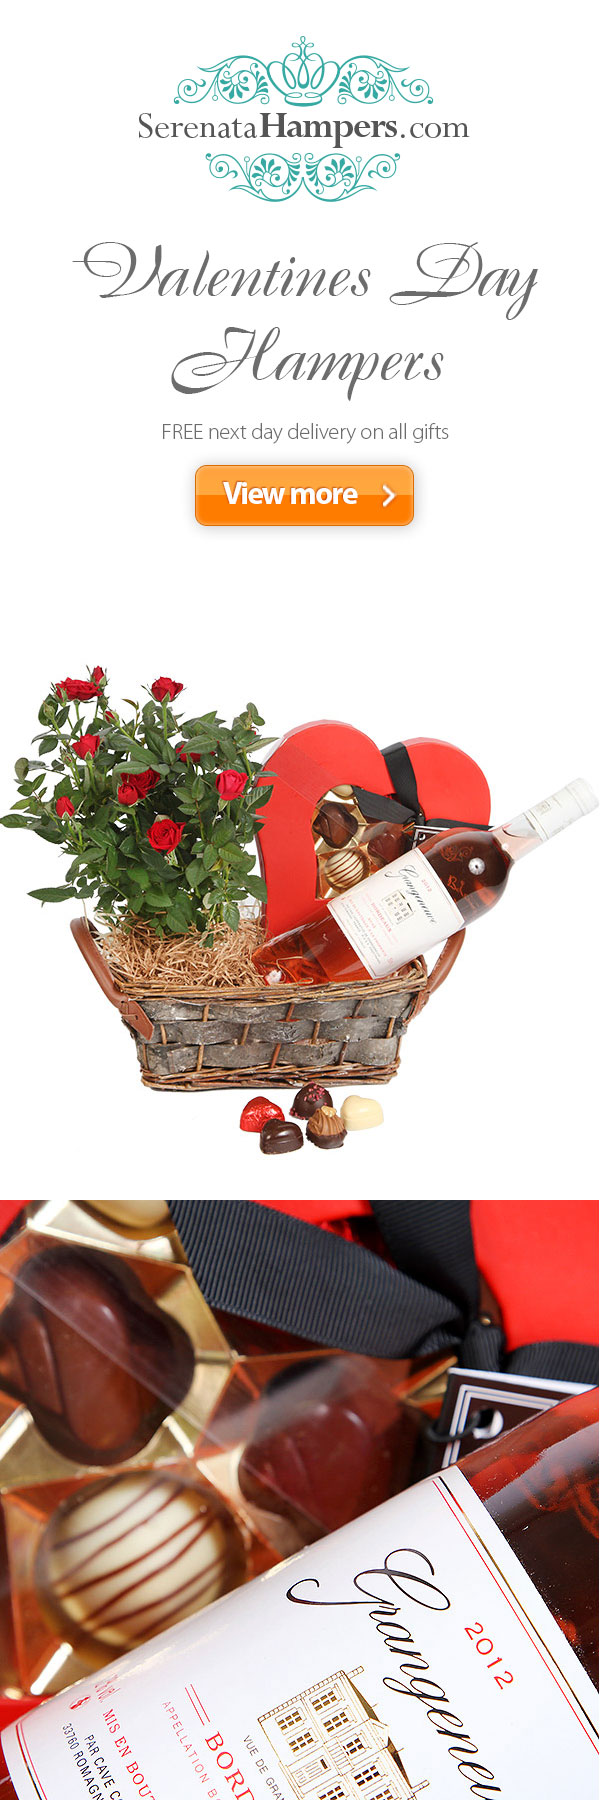 valentines #day #hampers and #gifts with free next day #delivery ...